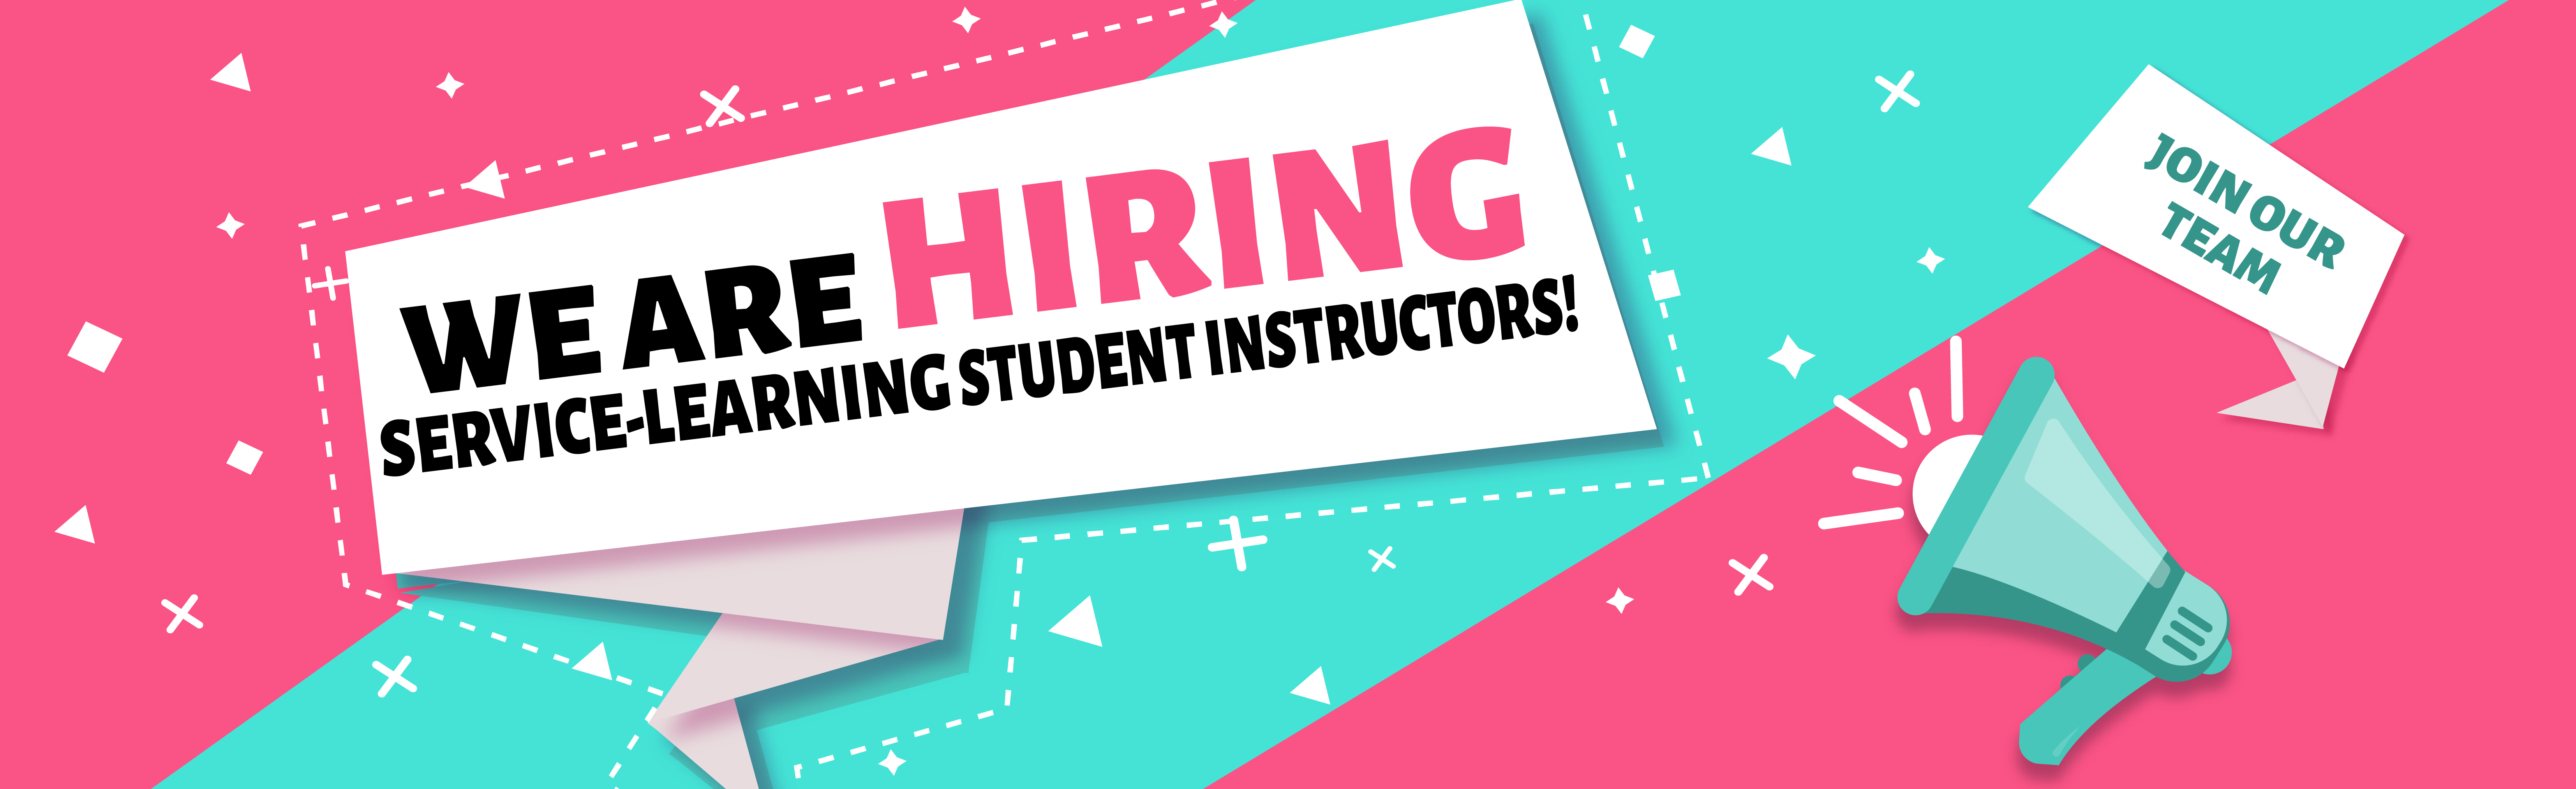 We are hiring student instructors!